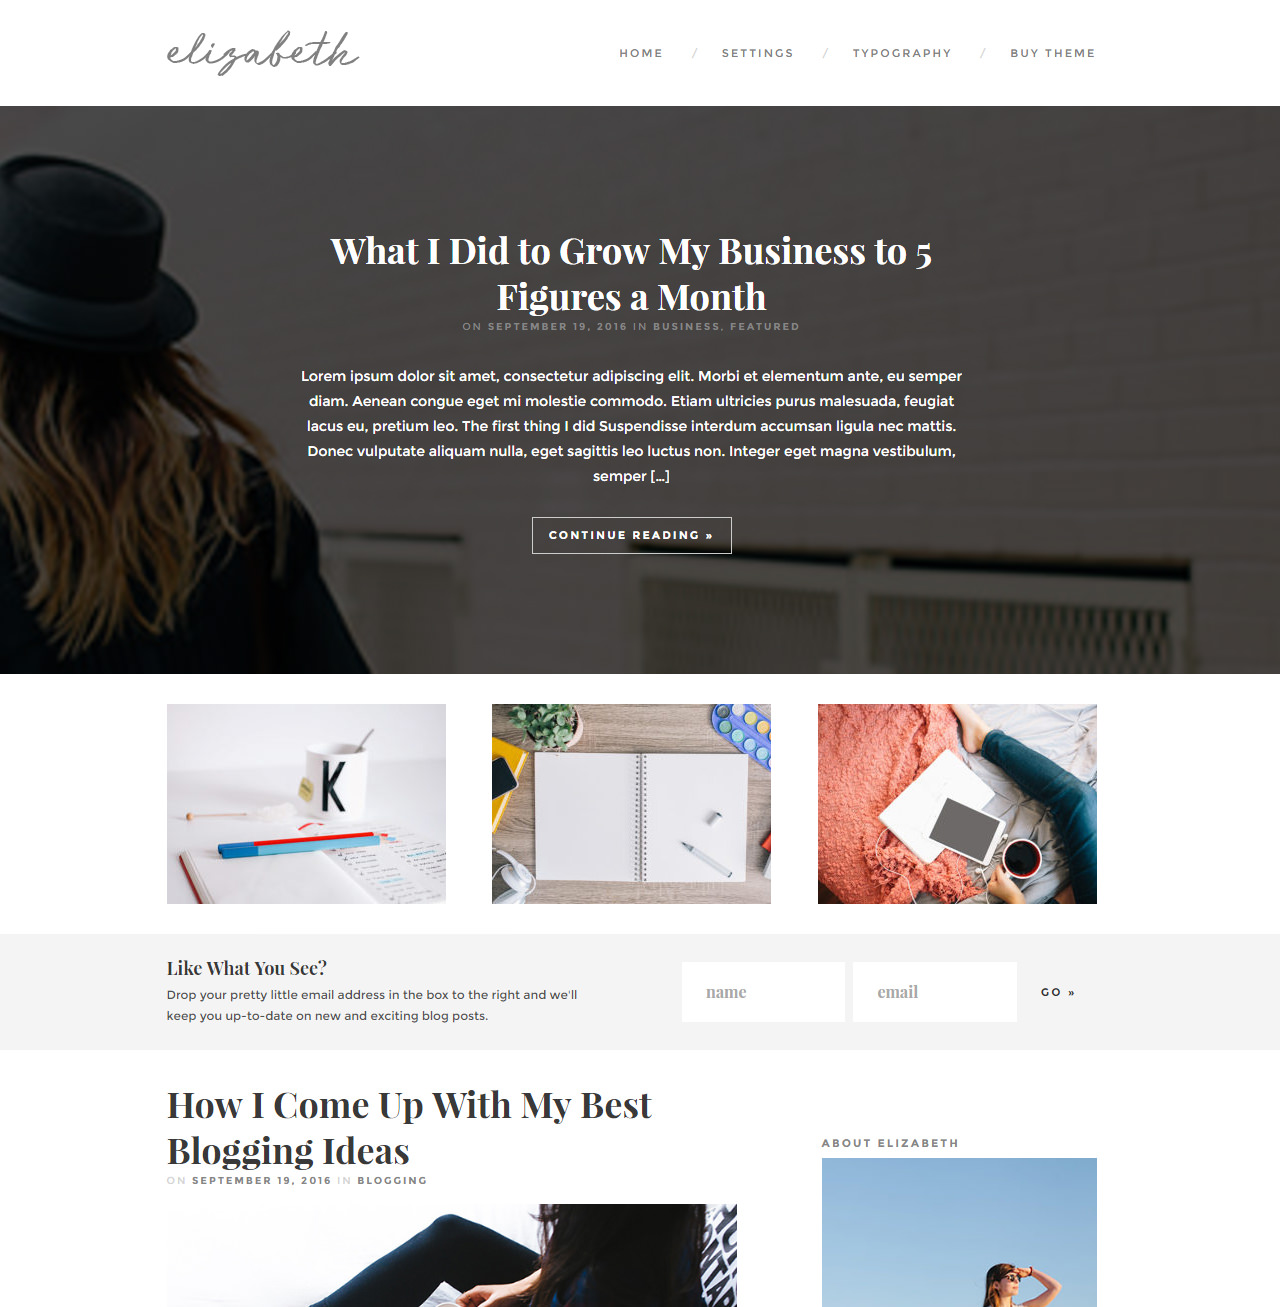 Elizabeth - Magazine theme for WordPress bloggers